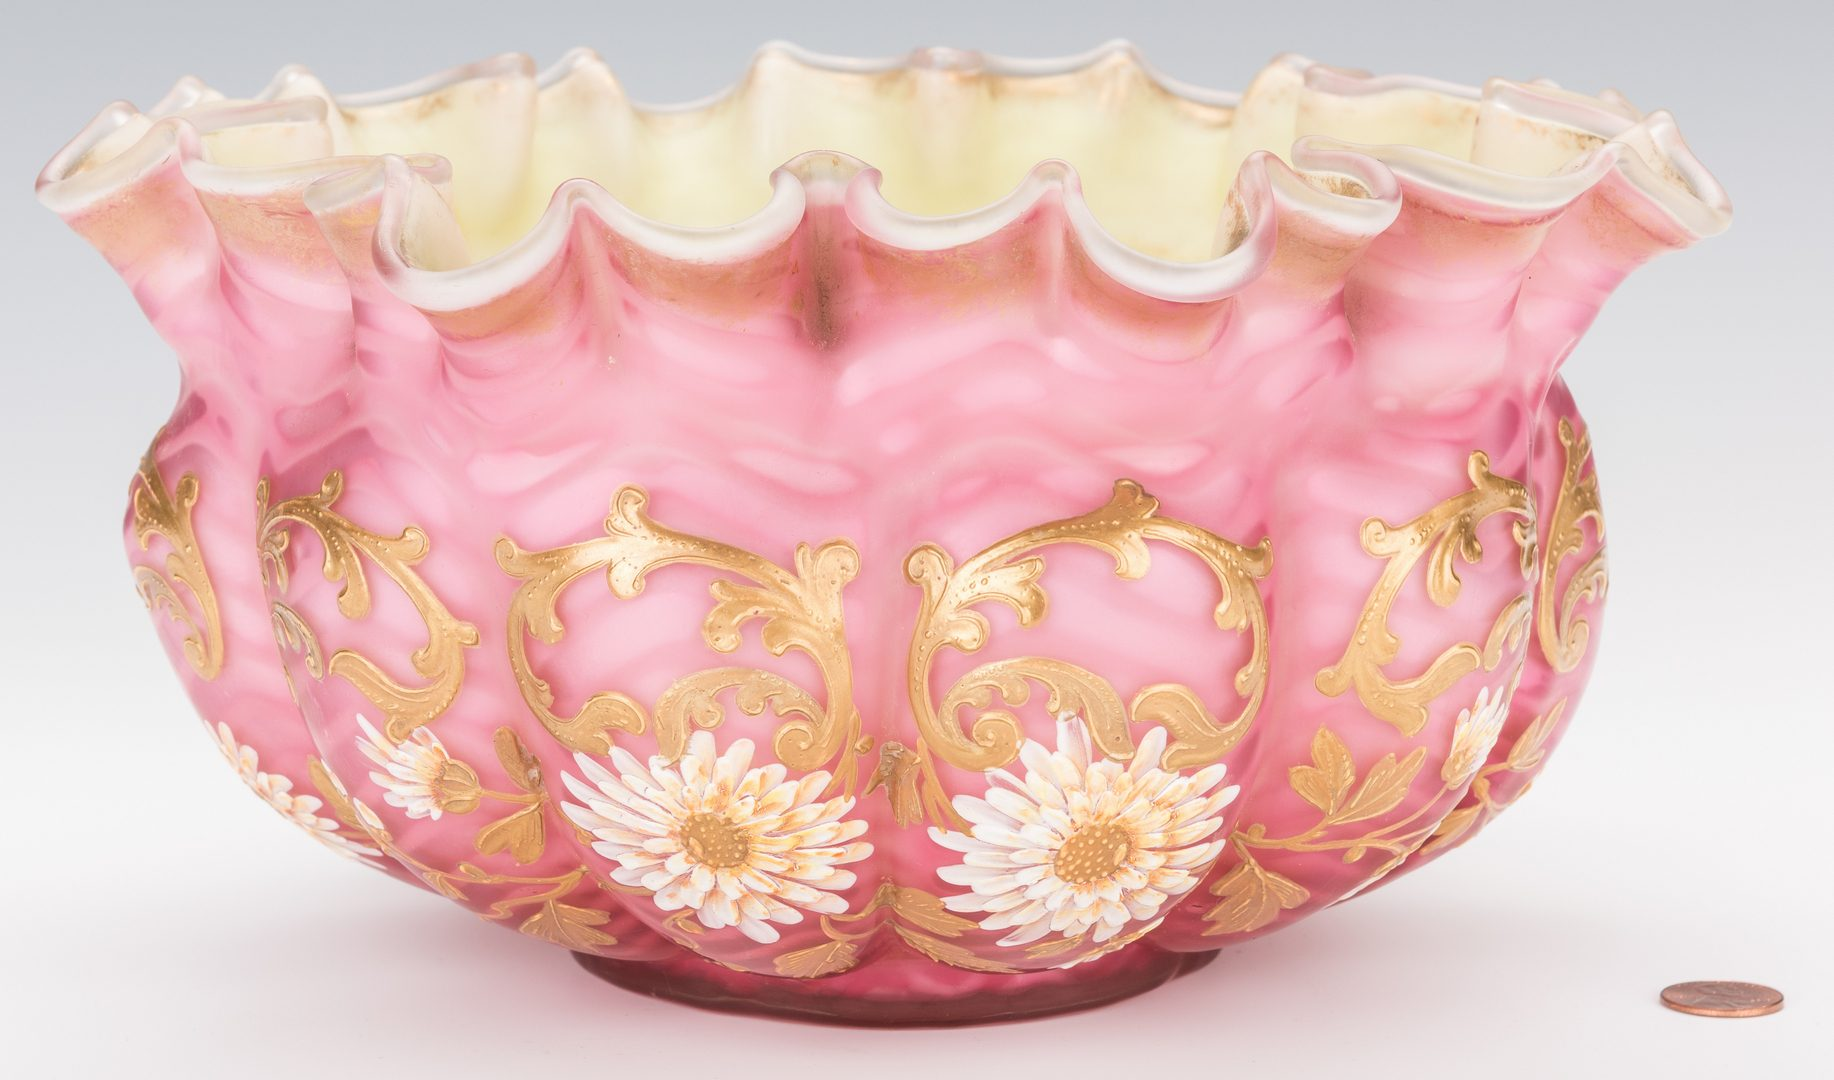 Lot 229: Gilt Satin Glass Air-Trap Bride's Bowl, Poss. Webb